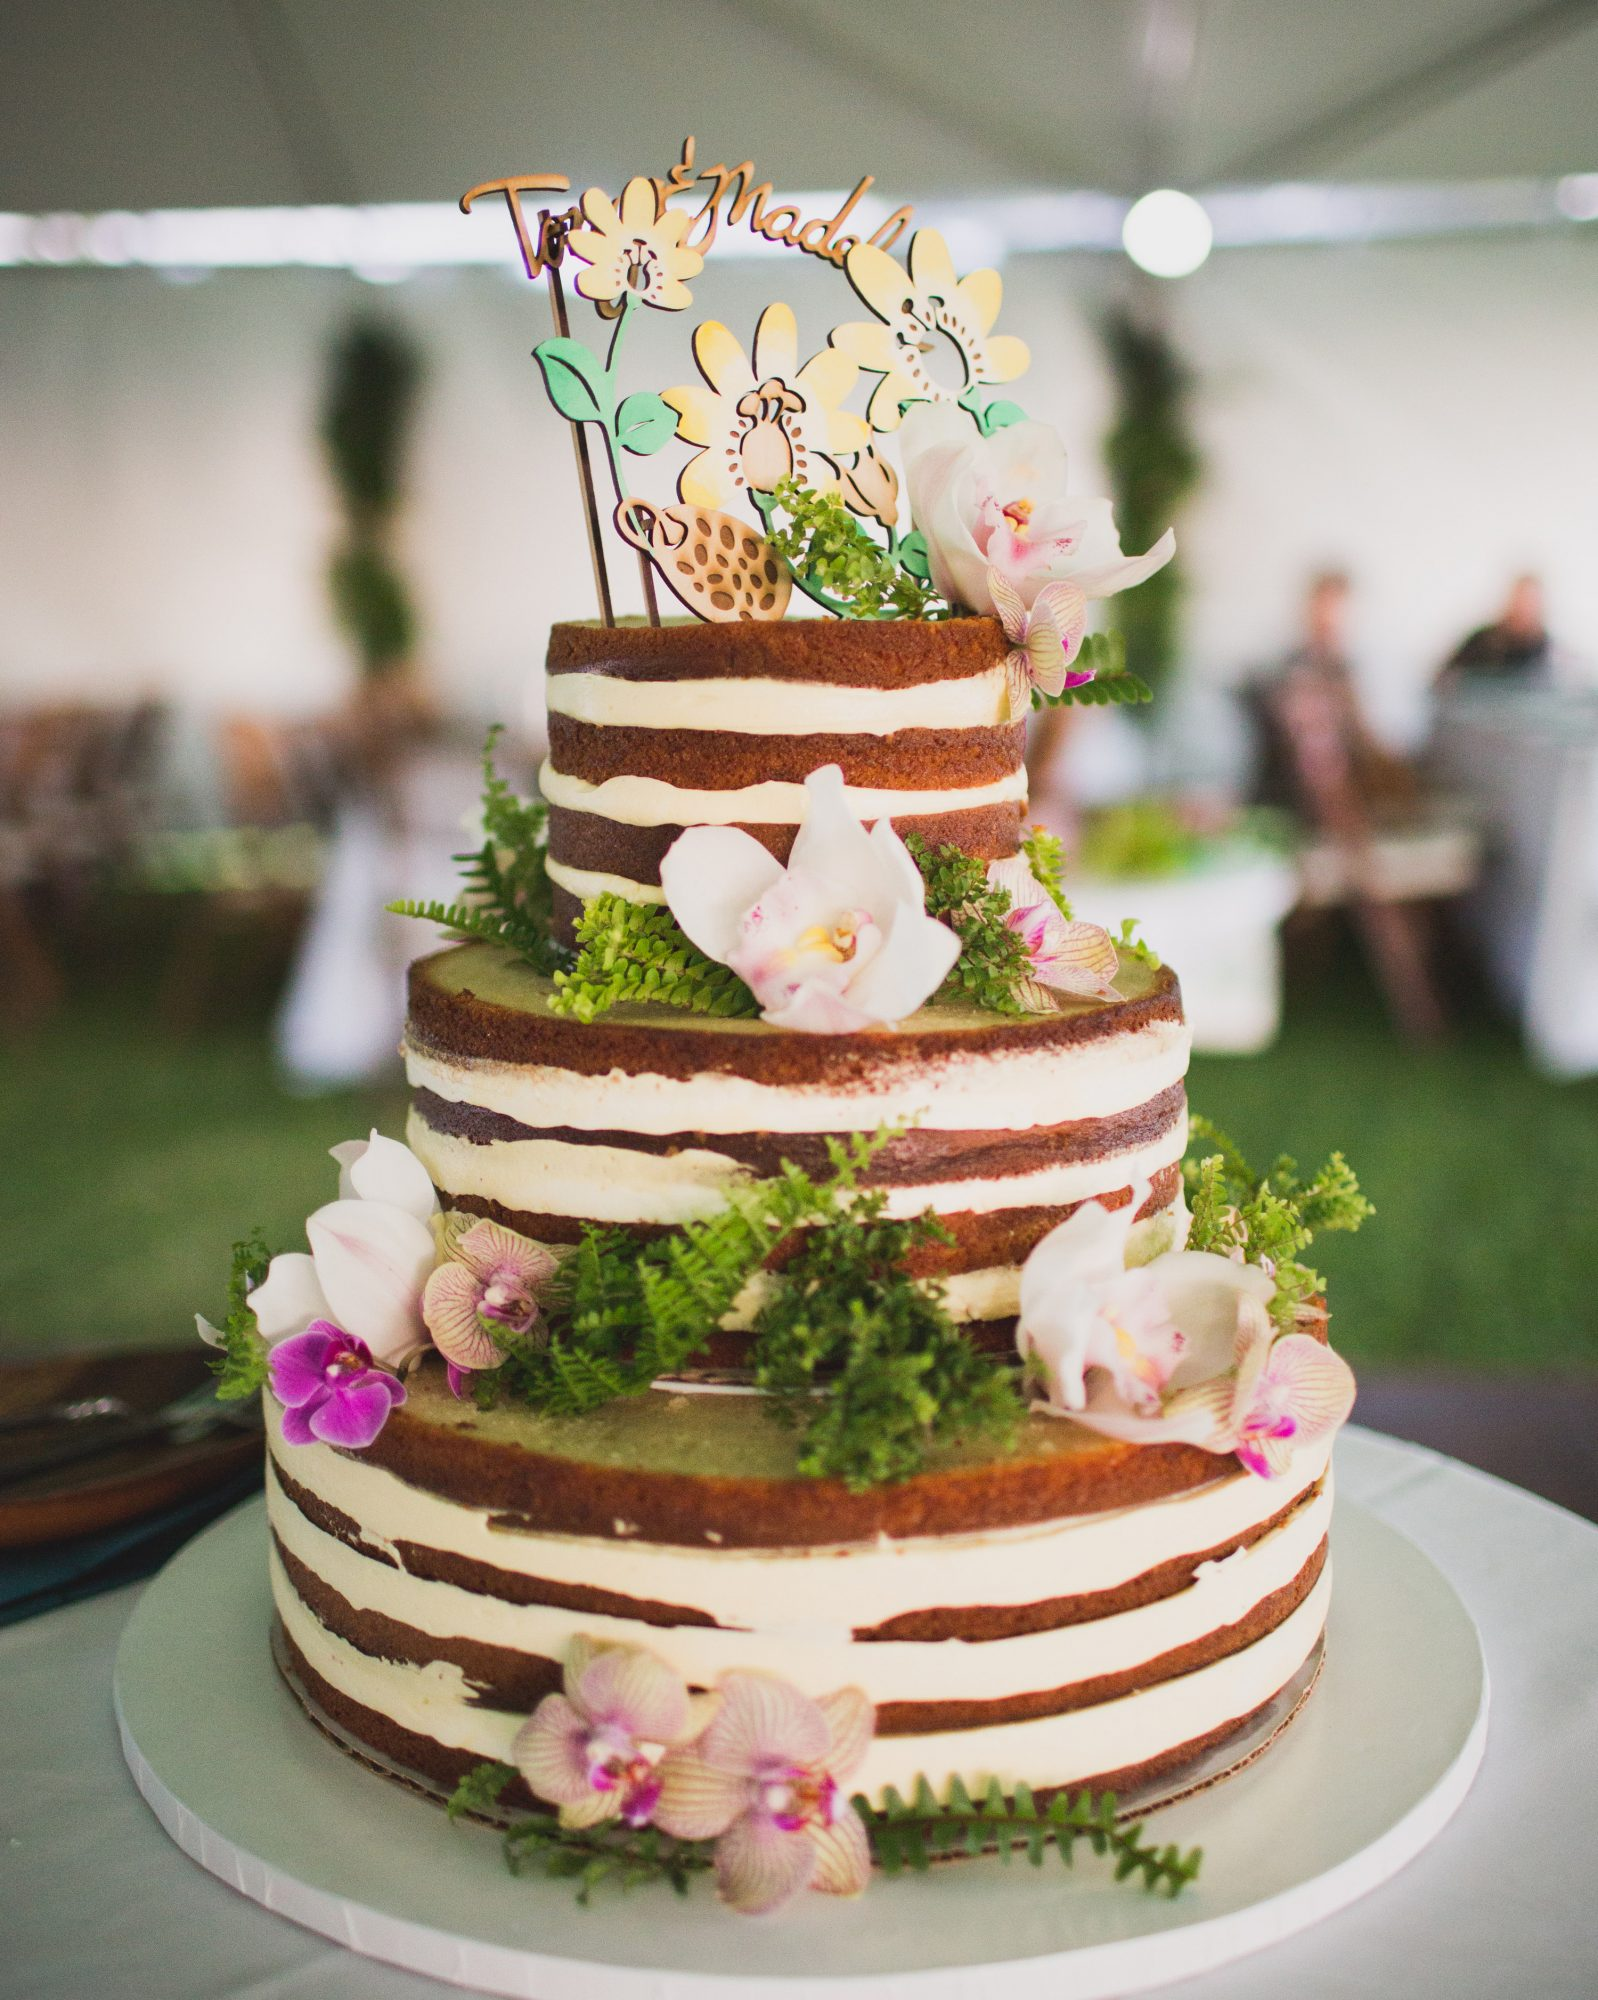 The passionfruit-soaked white cake, made by Celebrations Maui, at this Hawaii wedding was adorned with island blooms and a custom topper.